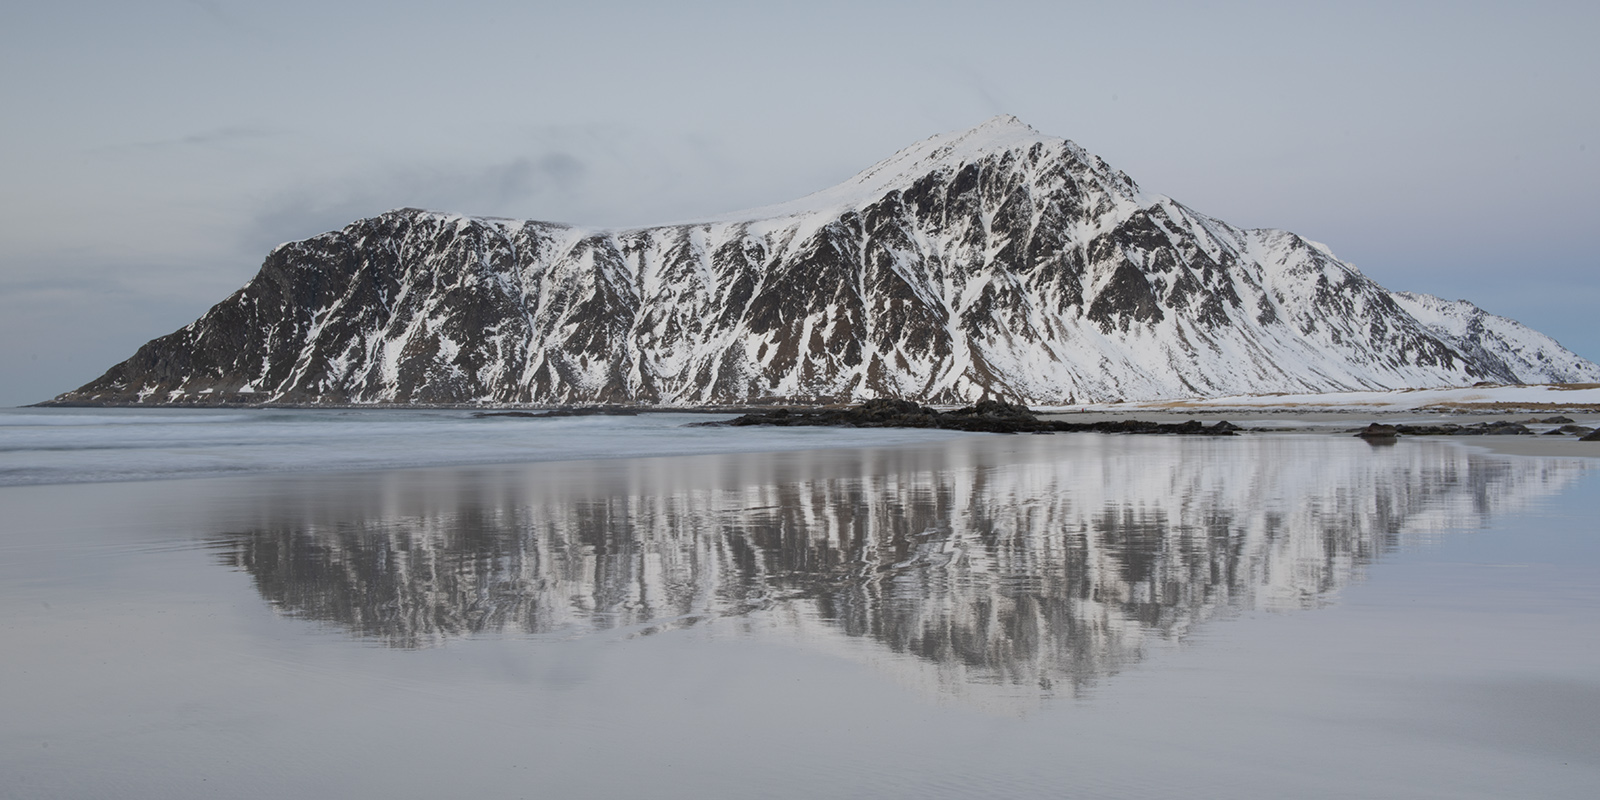 panorama, norway, gallery, lofoten, reflection, hustinden, flakstadoya, beach, skagstanden, beach, coast, waves, long exposure, ethereal, snow, rugged, strong, peaceful, quiet, serene, photo